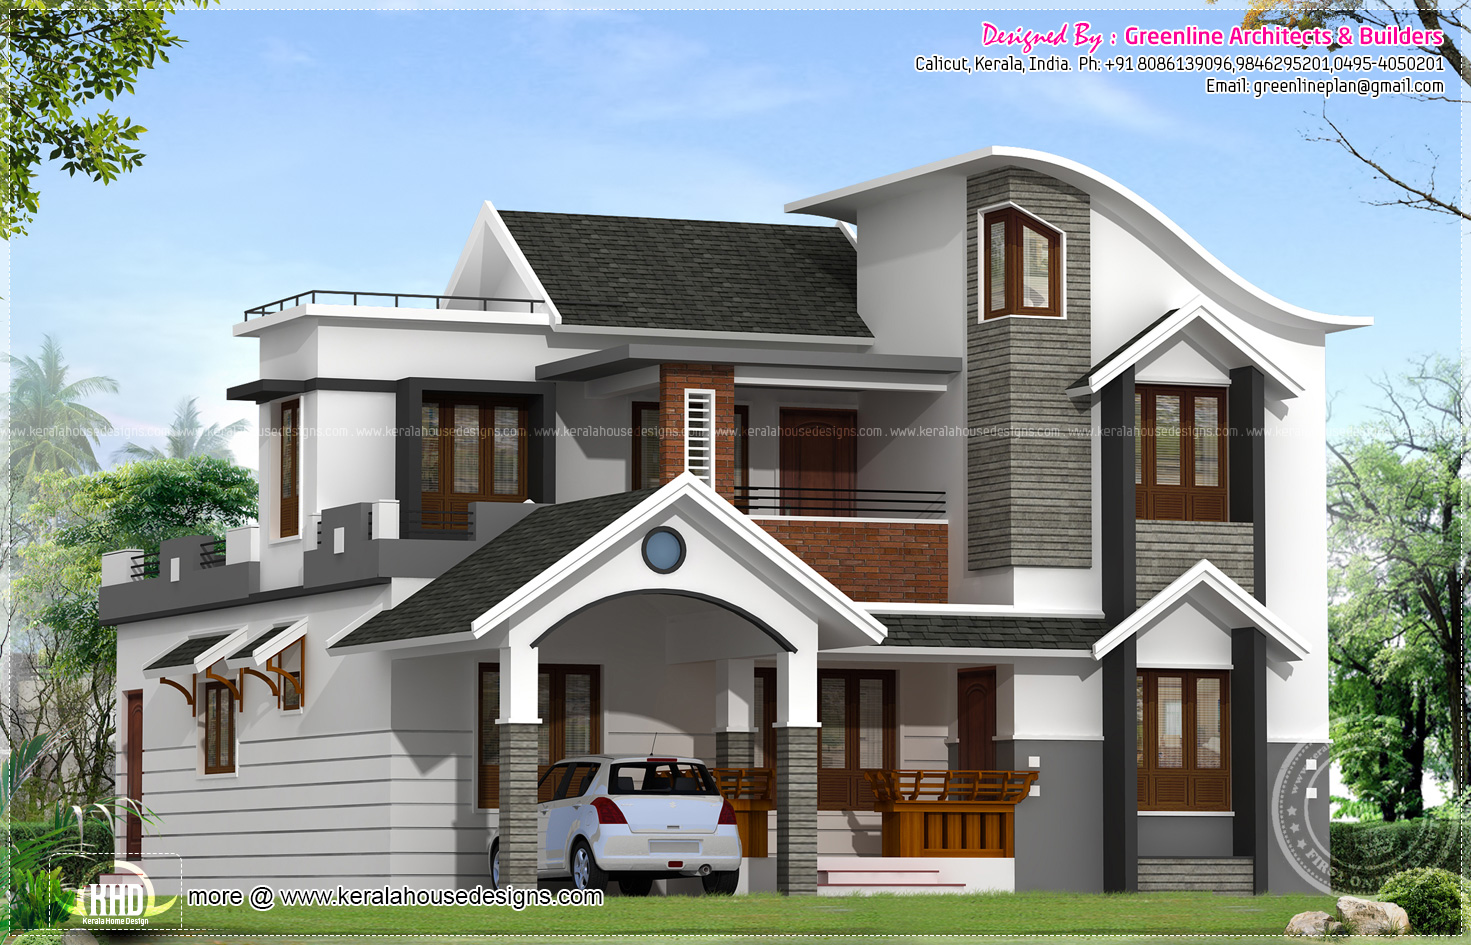 Modern house architecture in kerala kerala home design for Contemporary home plans